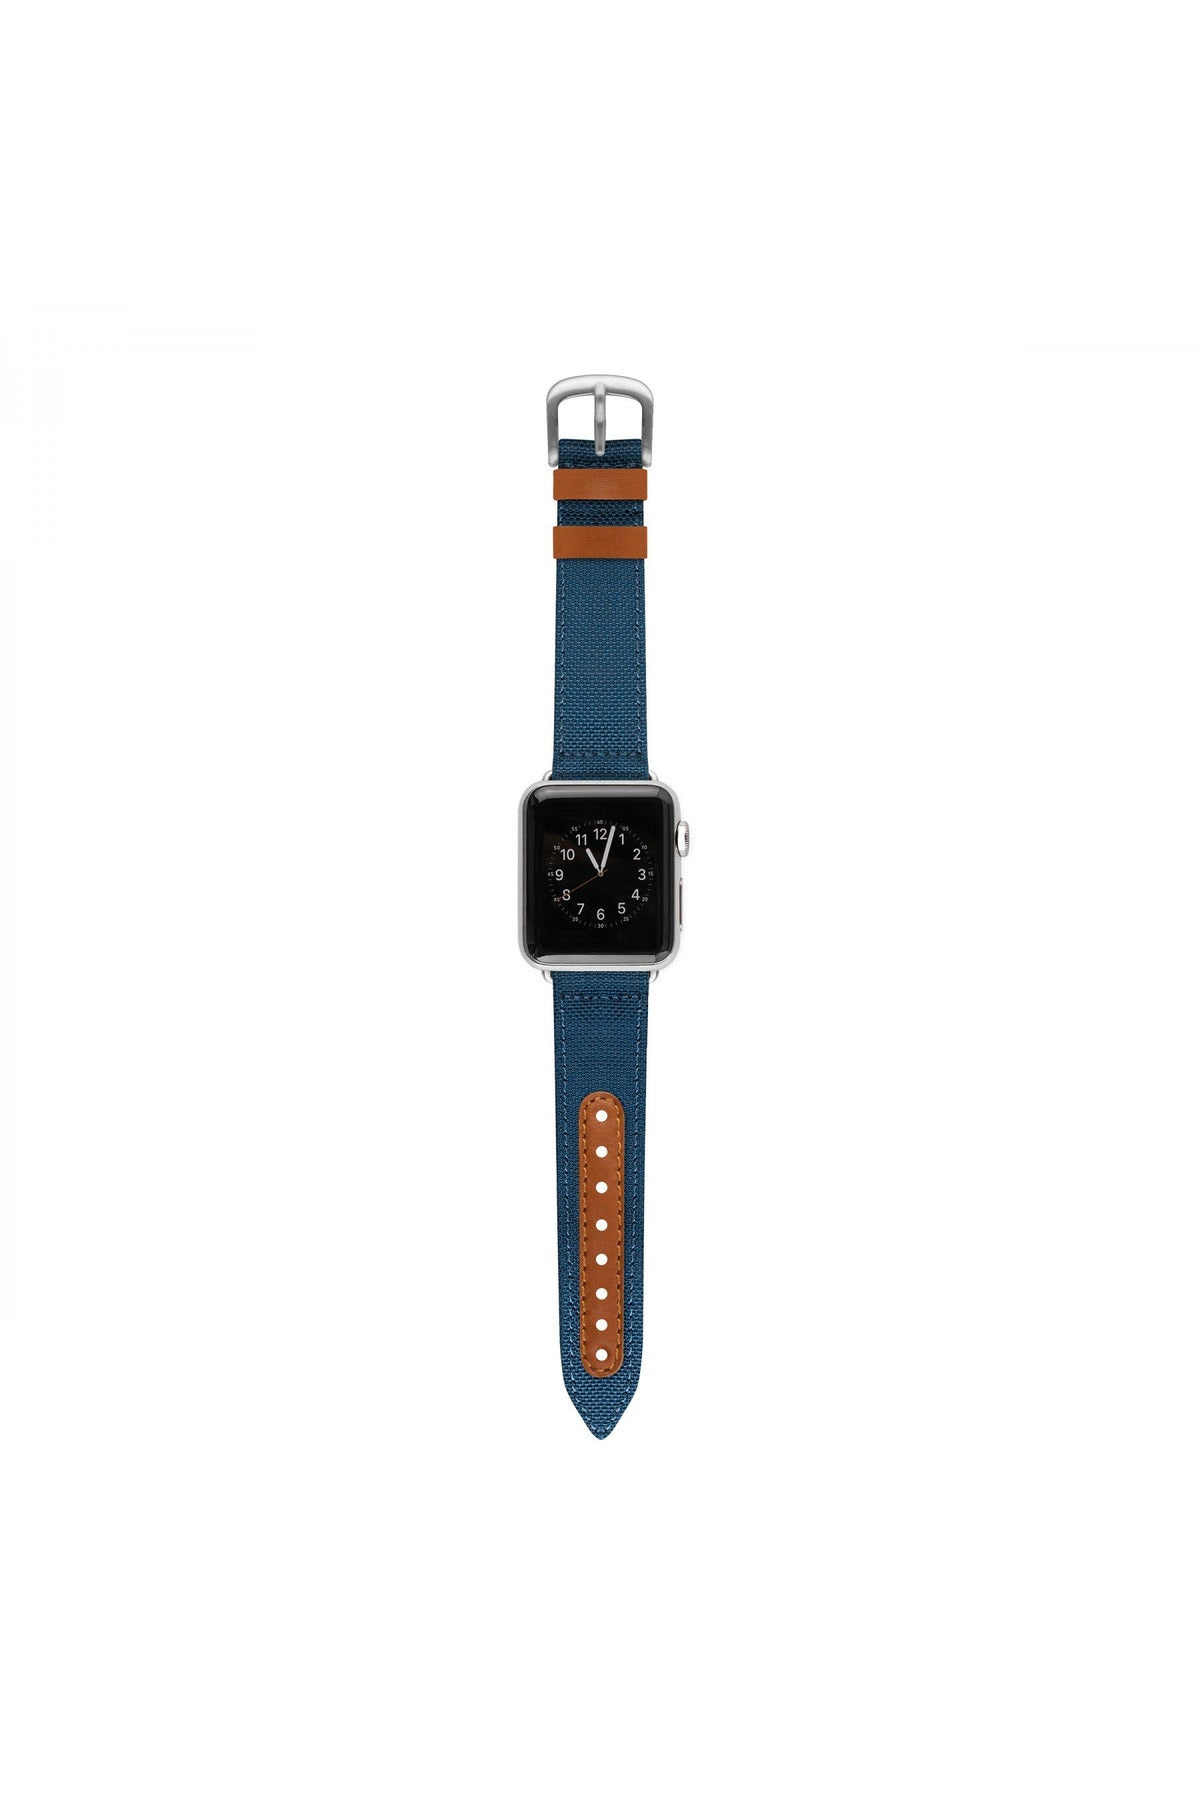 Evutec Northill Series Apple Watch Band 38MM & 40MM - Blue/Saddle (WB-A13-38-D03) - www.emarketkw.com